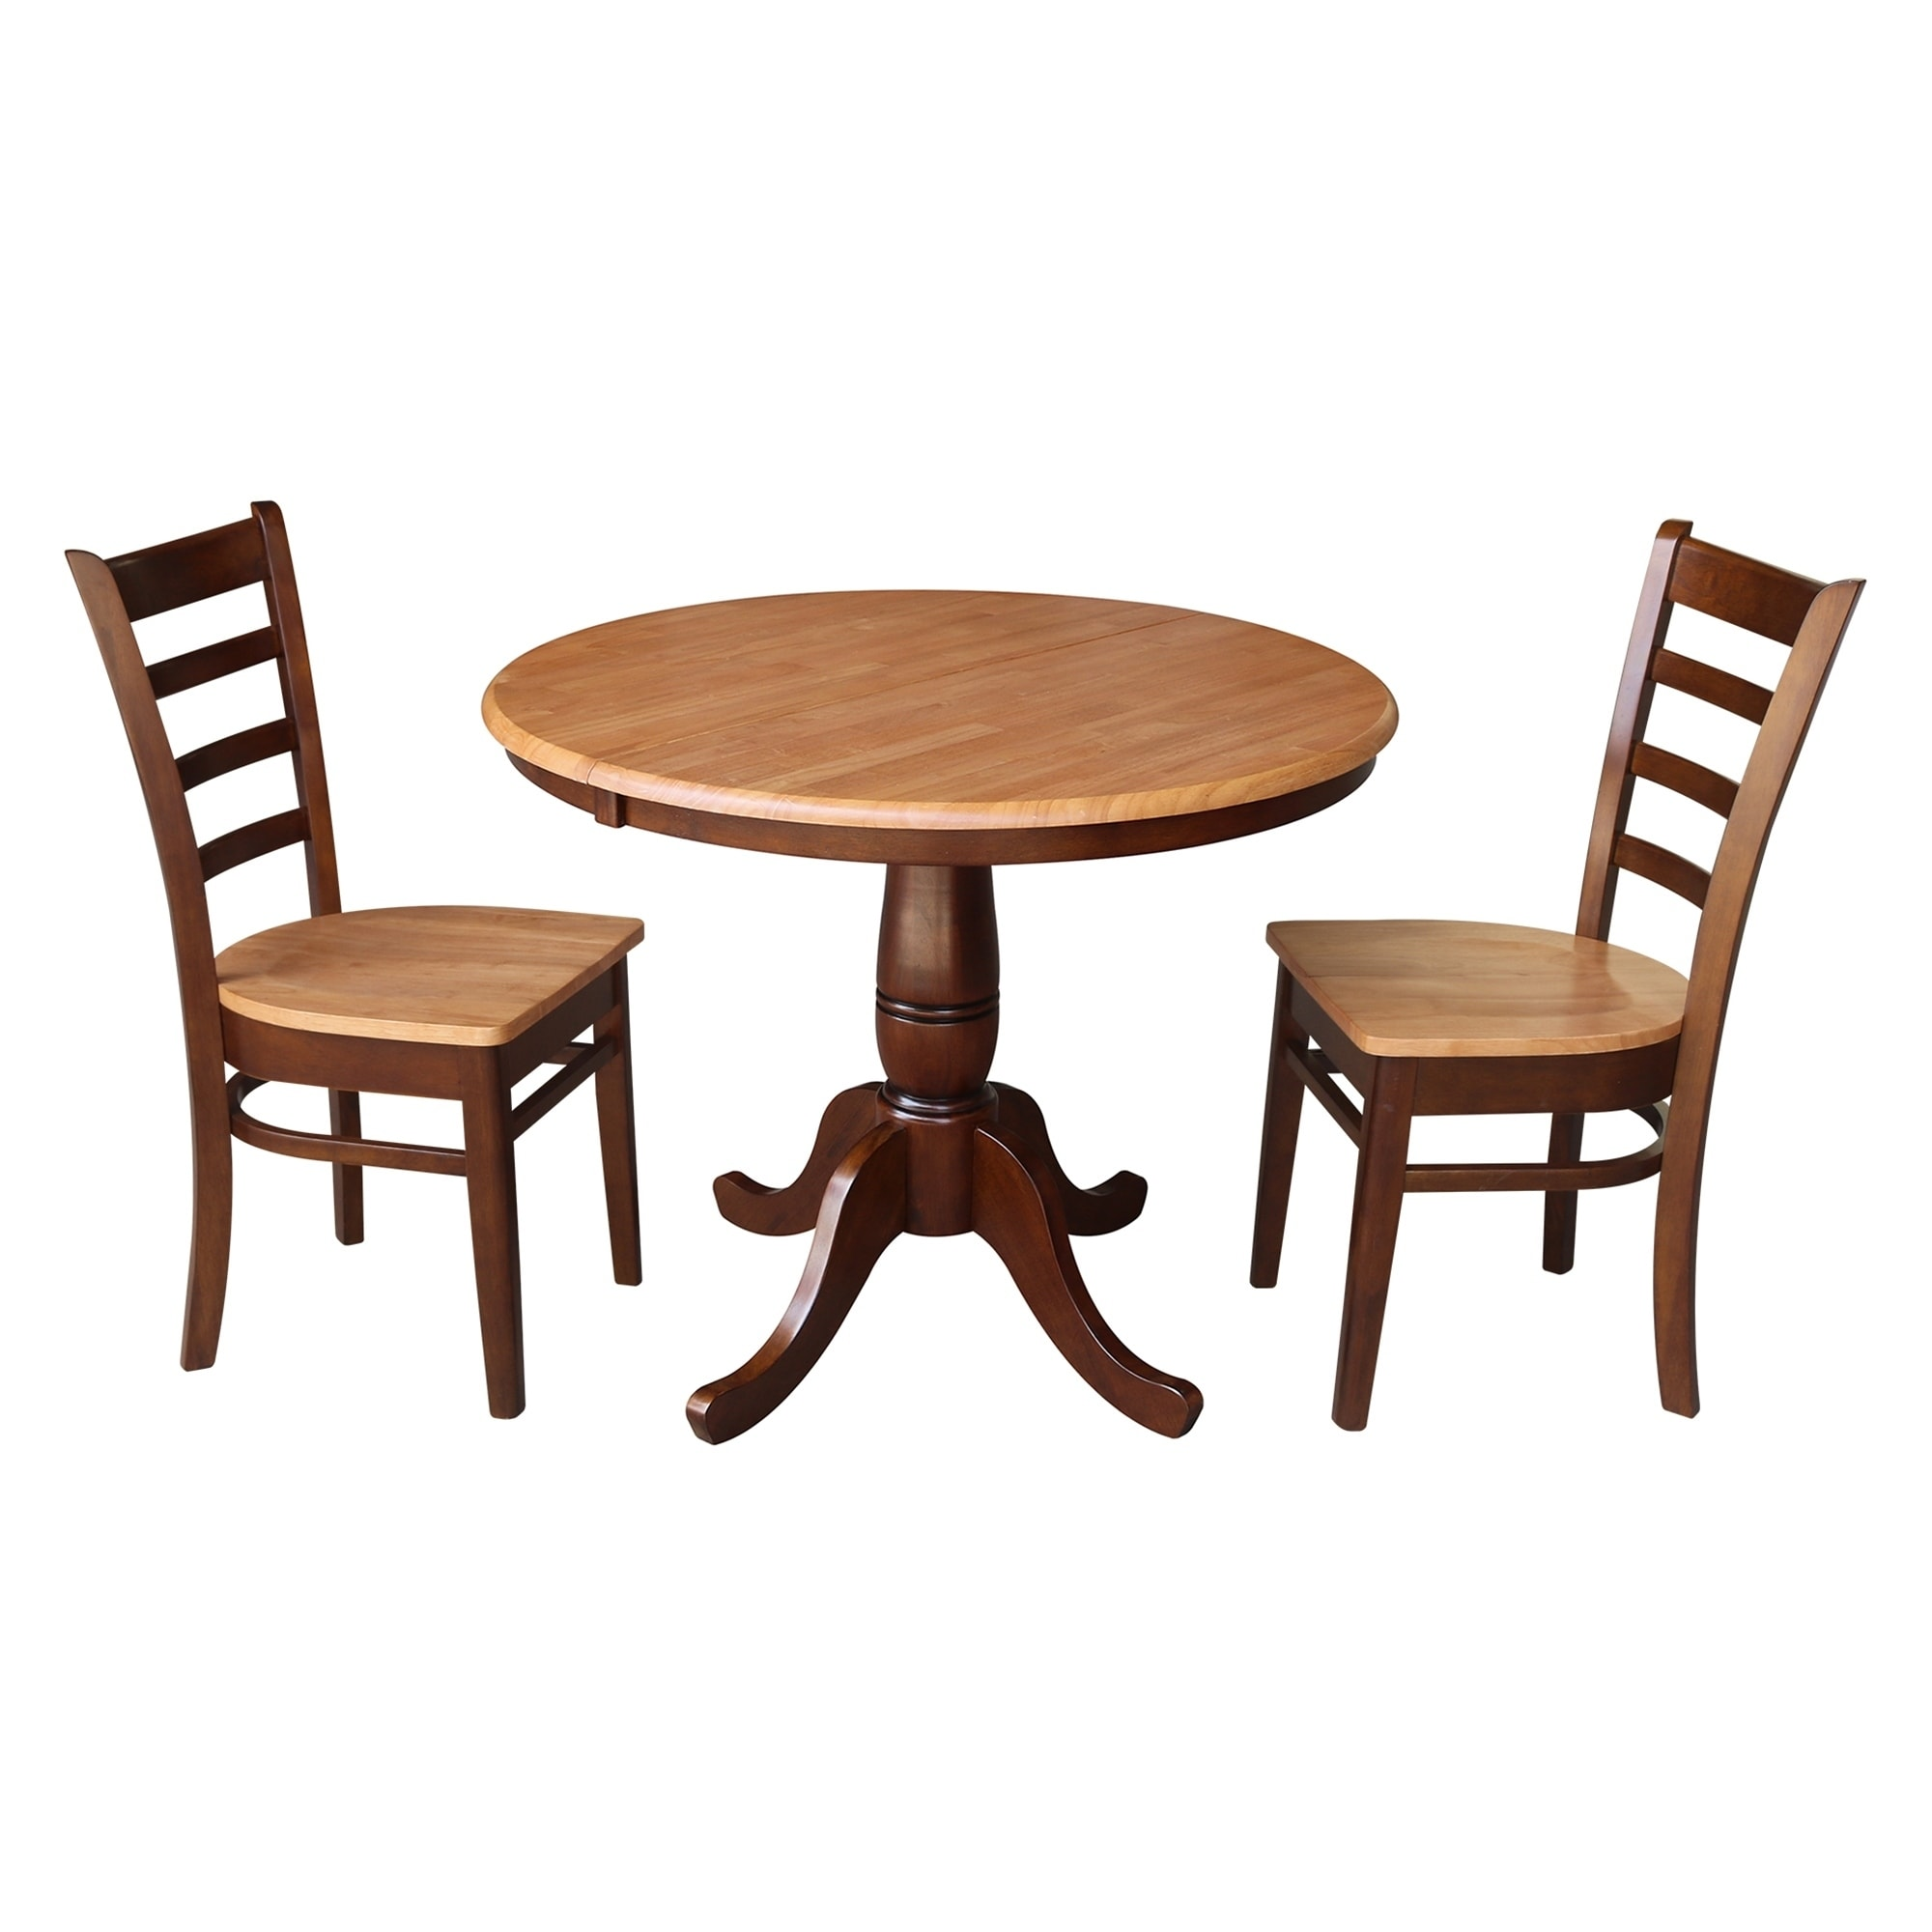 36 Round Dining Table With 12 Leaf And 2 Madrid Chairs Cinnamon Espresso 3 Piece Set Free Shipping Today 22815485